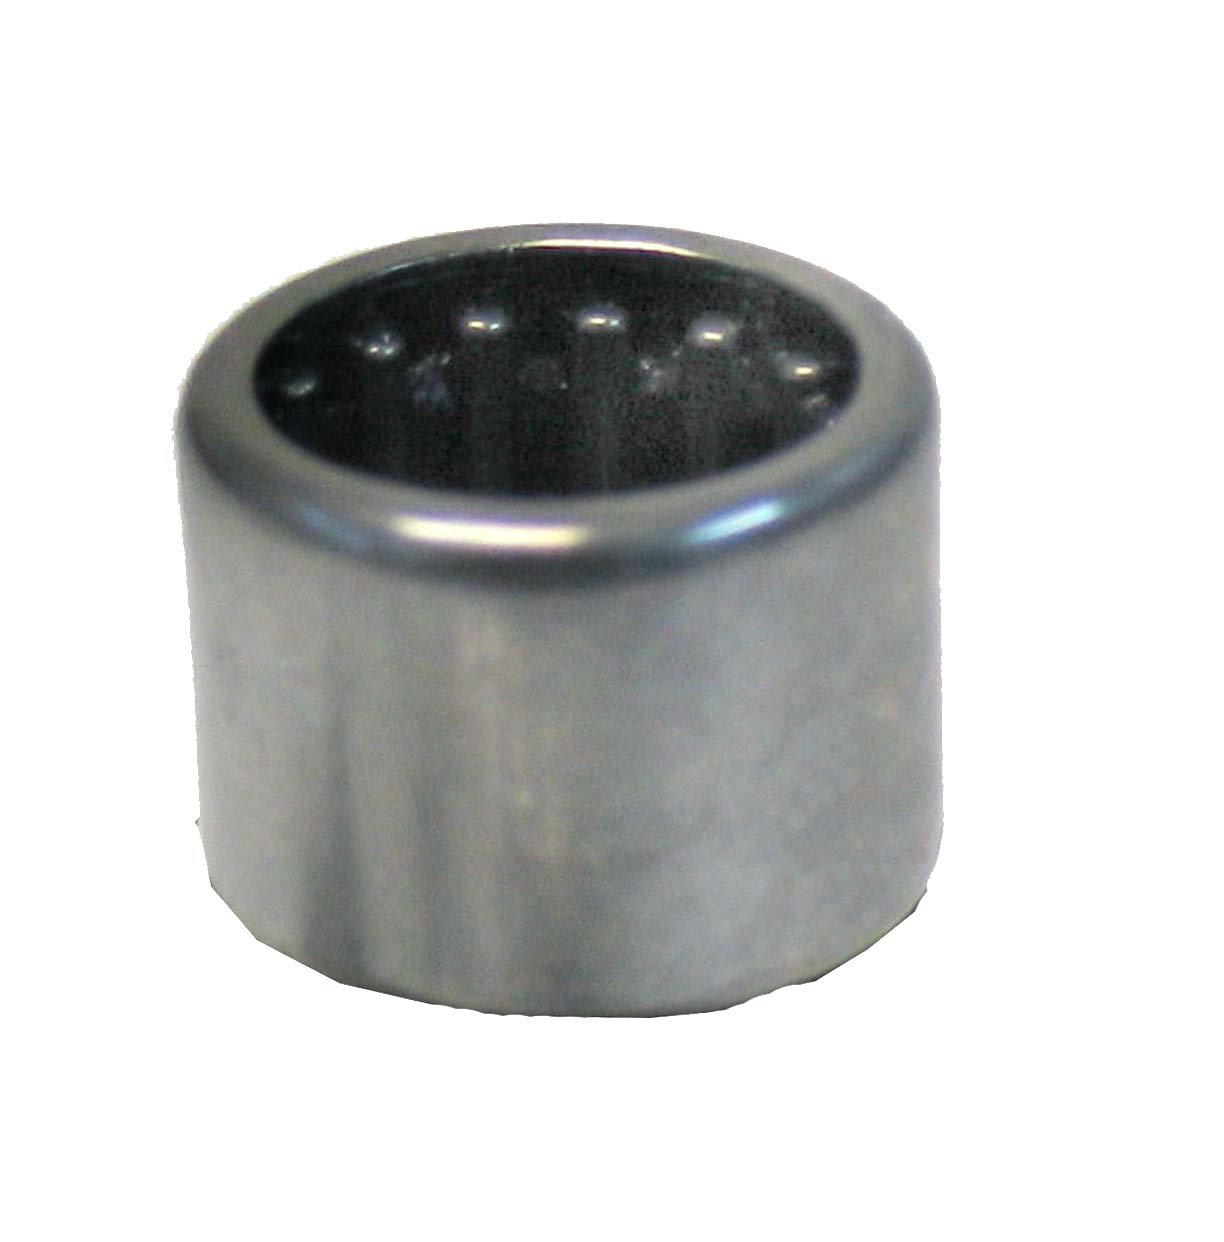 OREGON Bearing For MTD # 741-0404, 941-0404, 741-0136